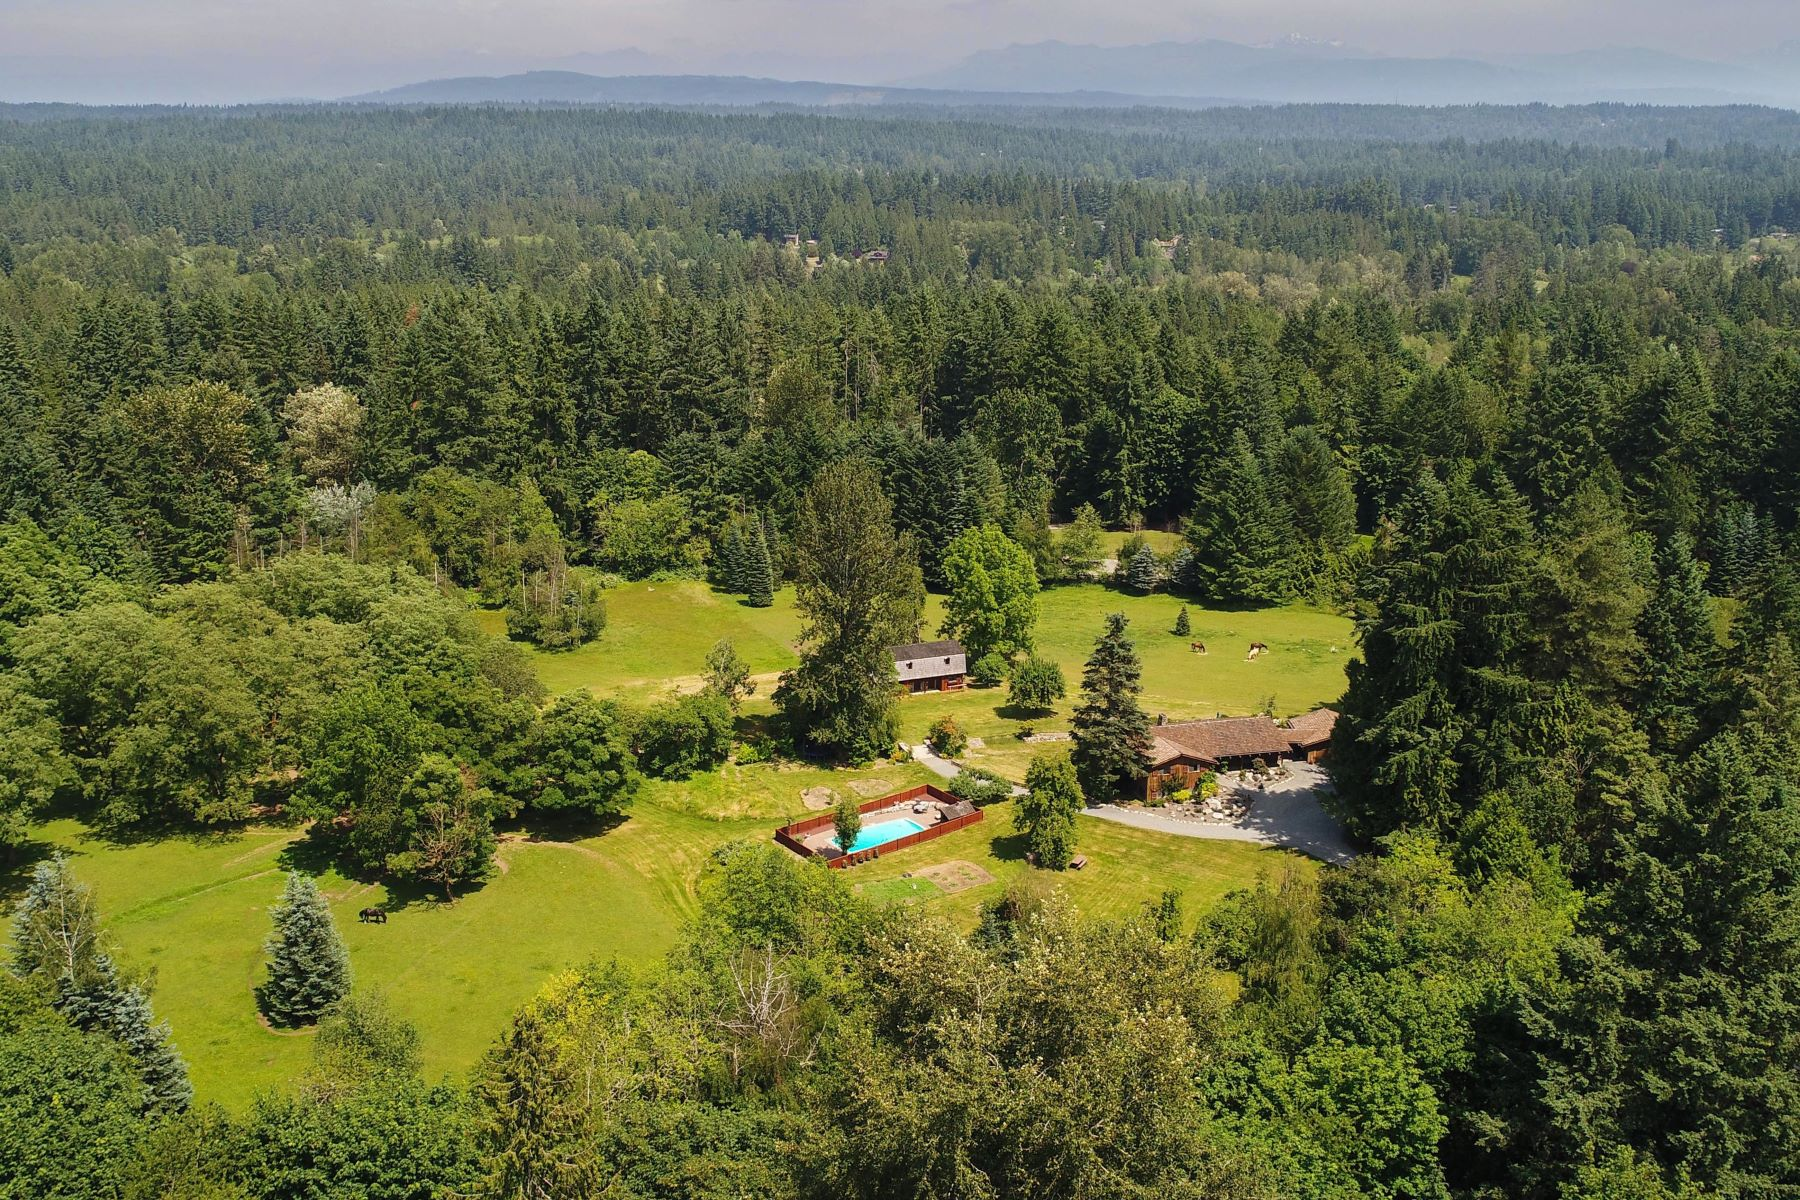 Maison unifamiliale pour l Vente à 14.7 Acres of Peaceful, Country Life Living in the Heart of Woodinville 17002 NE 172nd Place Woodinville, Washington, 98072 États-Unis